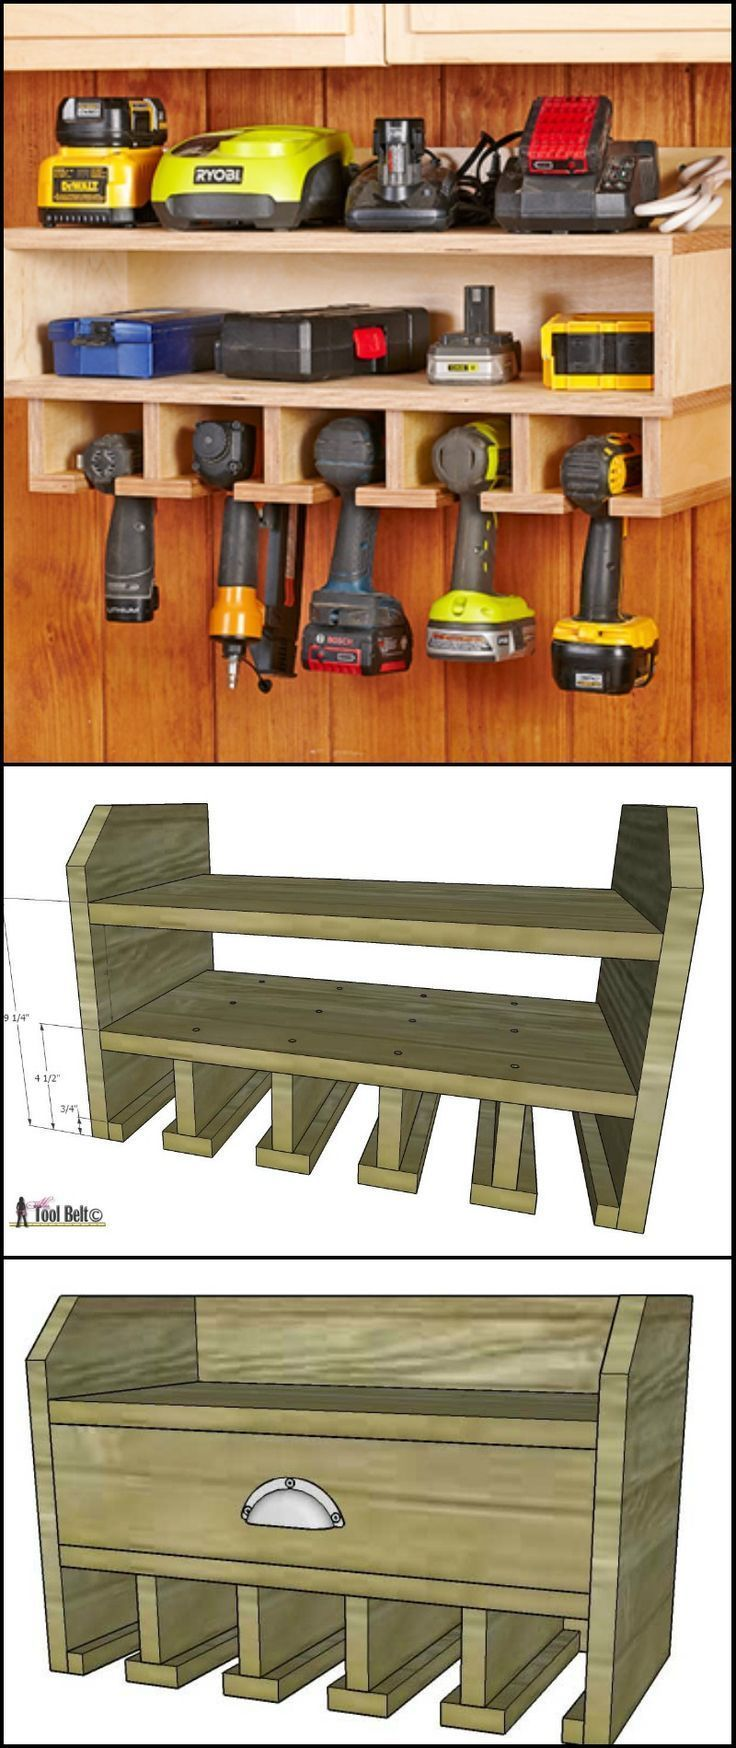 DIY Cordless Drill Storage And Charging Station diyprojects.ideas... This wall-mounted cordless drill storage will help keep the entire workshop looking clean and organized. It also serves as the charging station so that items related to your cordless tools are always all in one place! If you don't have any wall space available anymore, you can incorporate this idea into an existing furniture/storage in your workshop! http://www.freecycleusa.com/woodworking-with-ted-plans?utm_content=buffer4